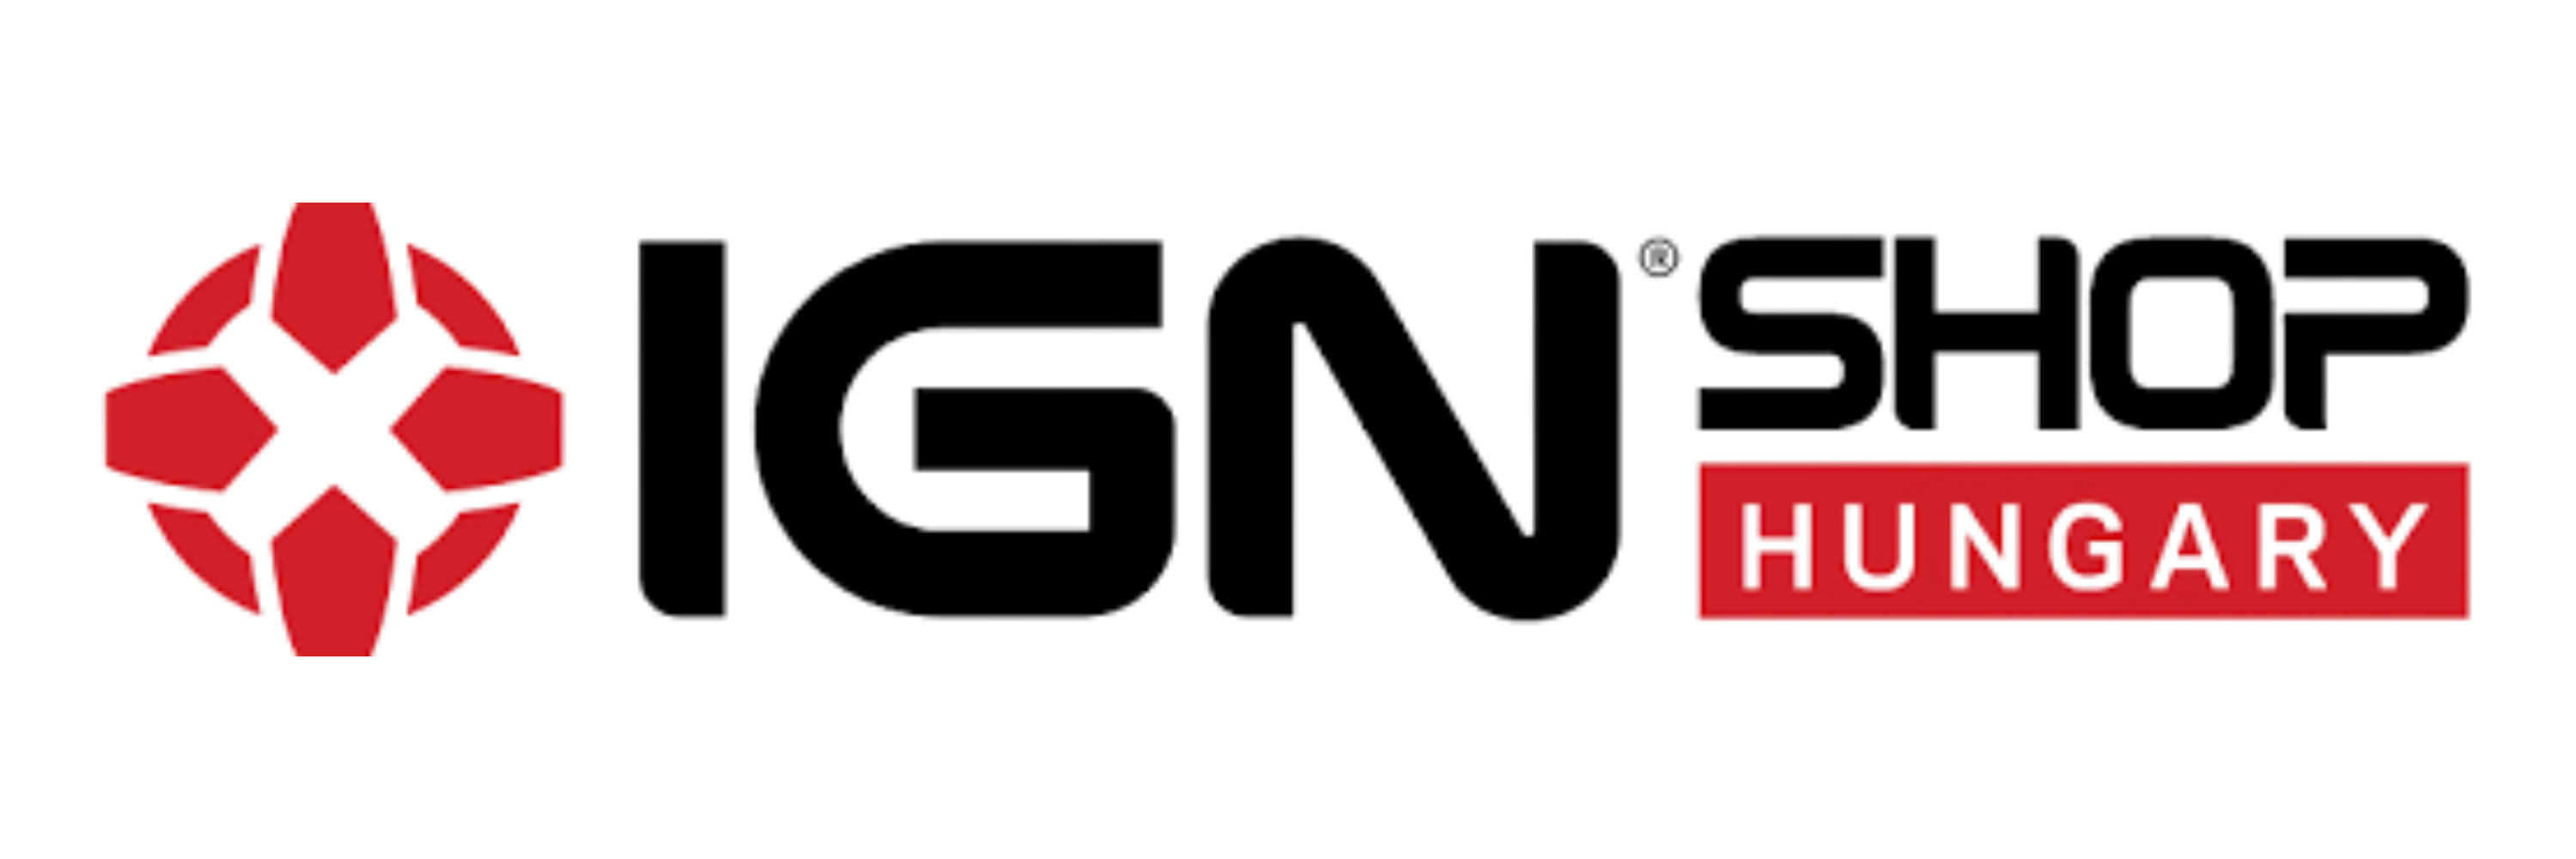 ign shop hungary logo